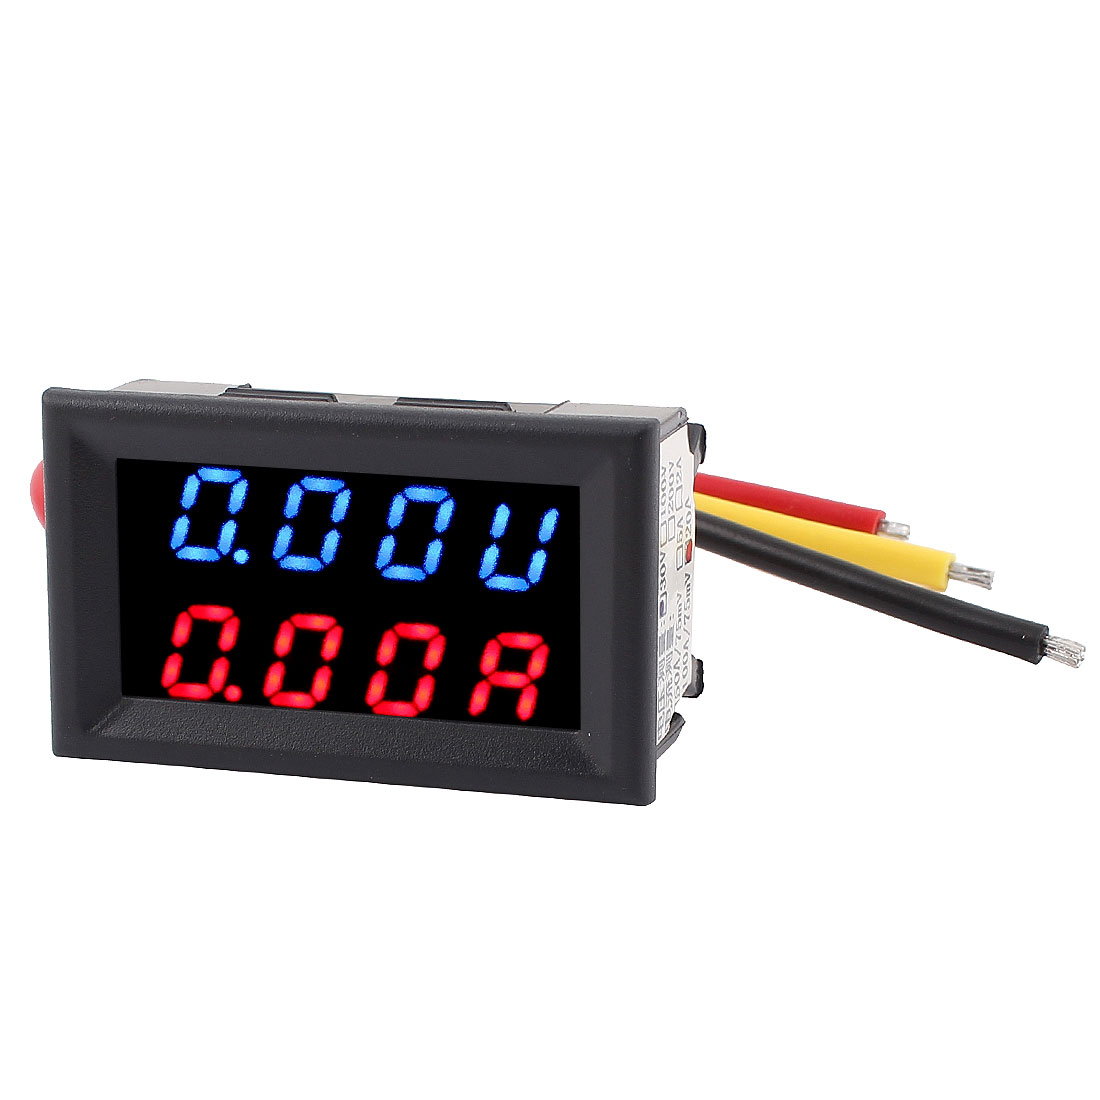 DC 0-30V 0-20A Blue Red LED Dual Digital Display Panel Voltmeter Ammeter Meter